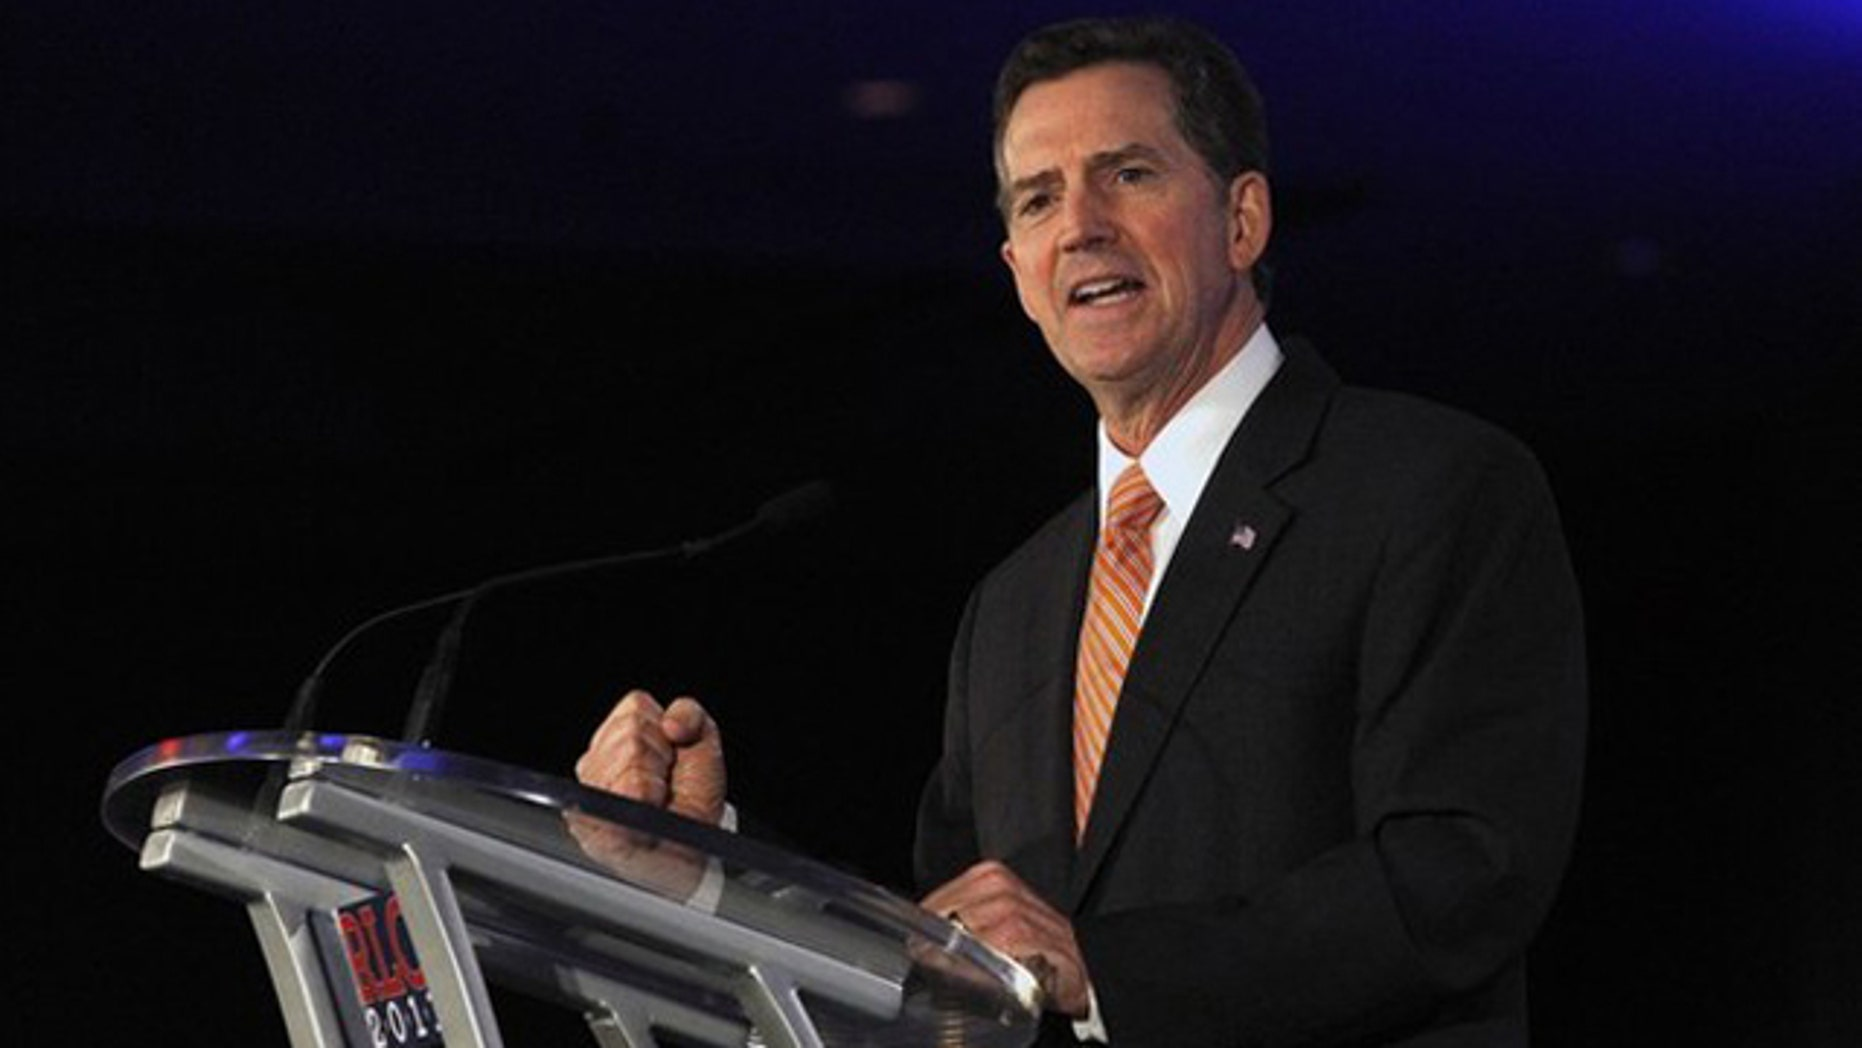 June 17, 2011: Sen. Jim DeMint speaks during the Republican Leadership Conference in New Orleans.